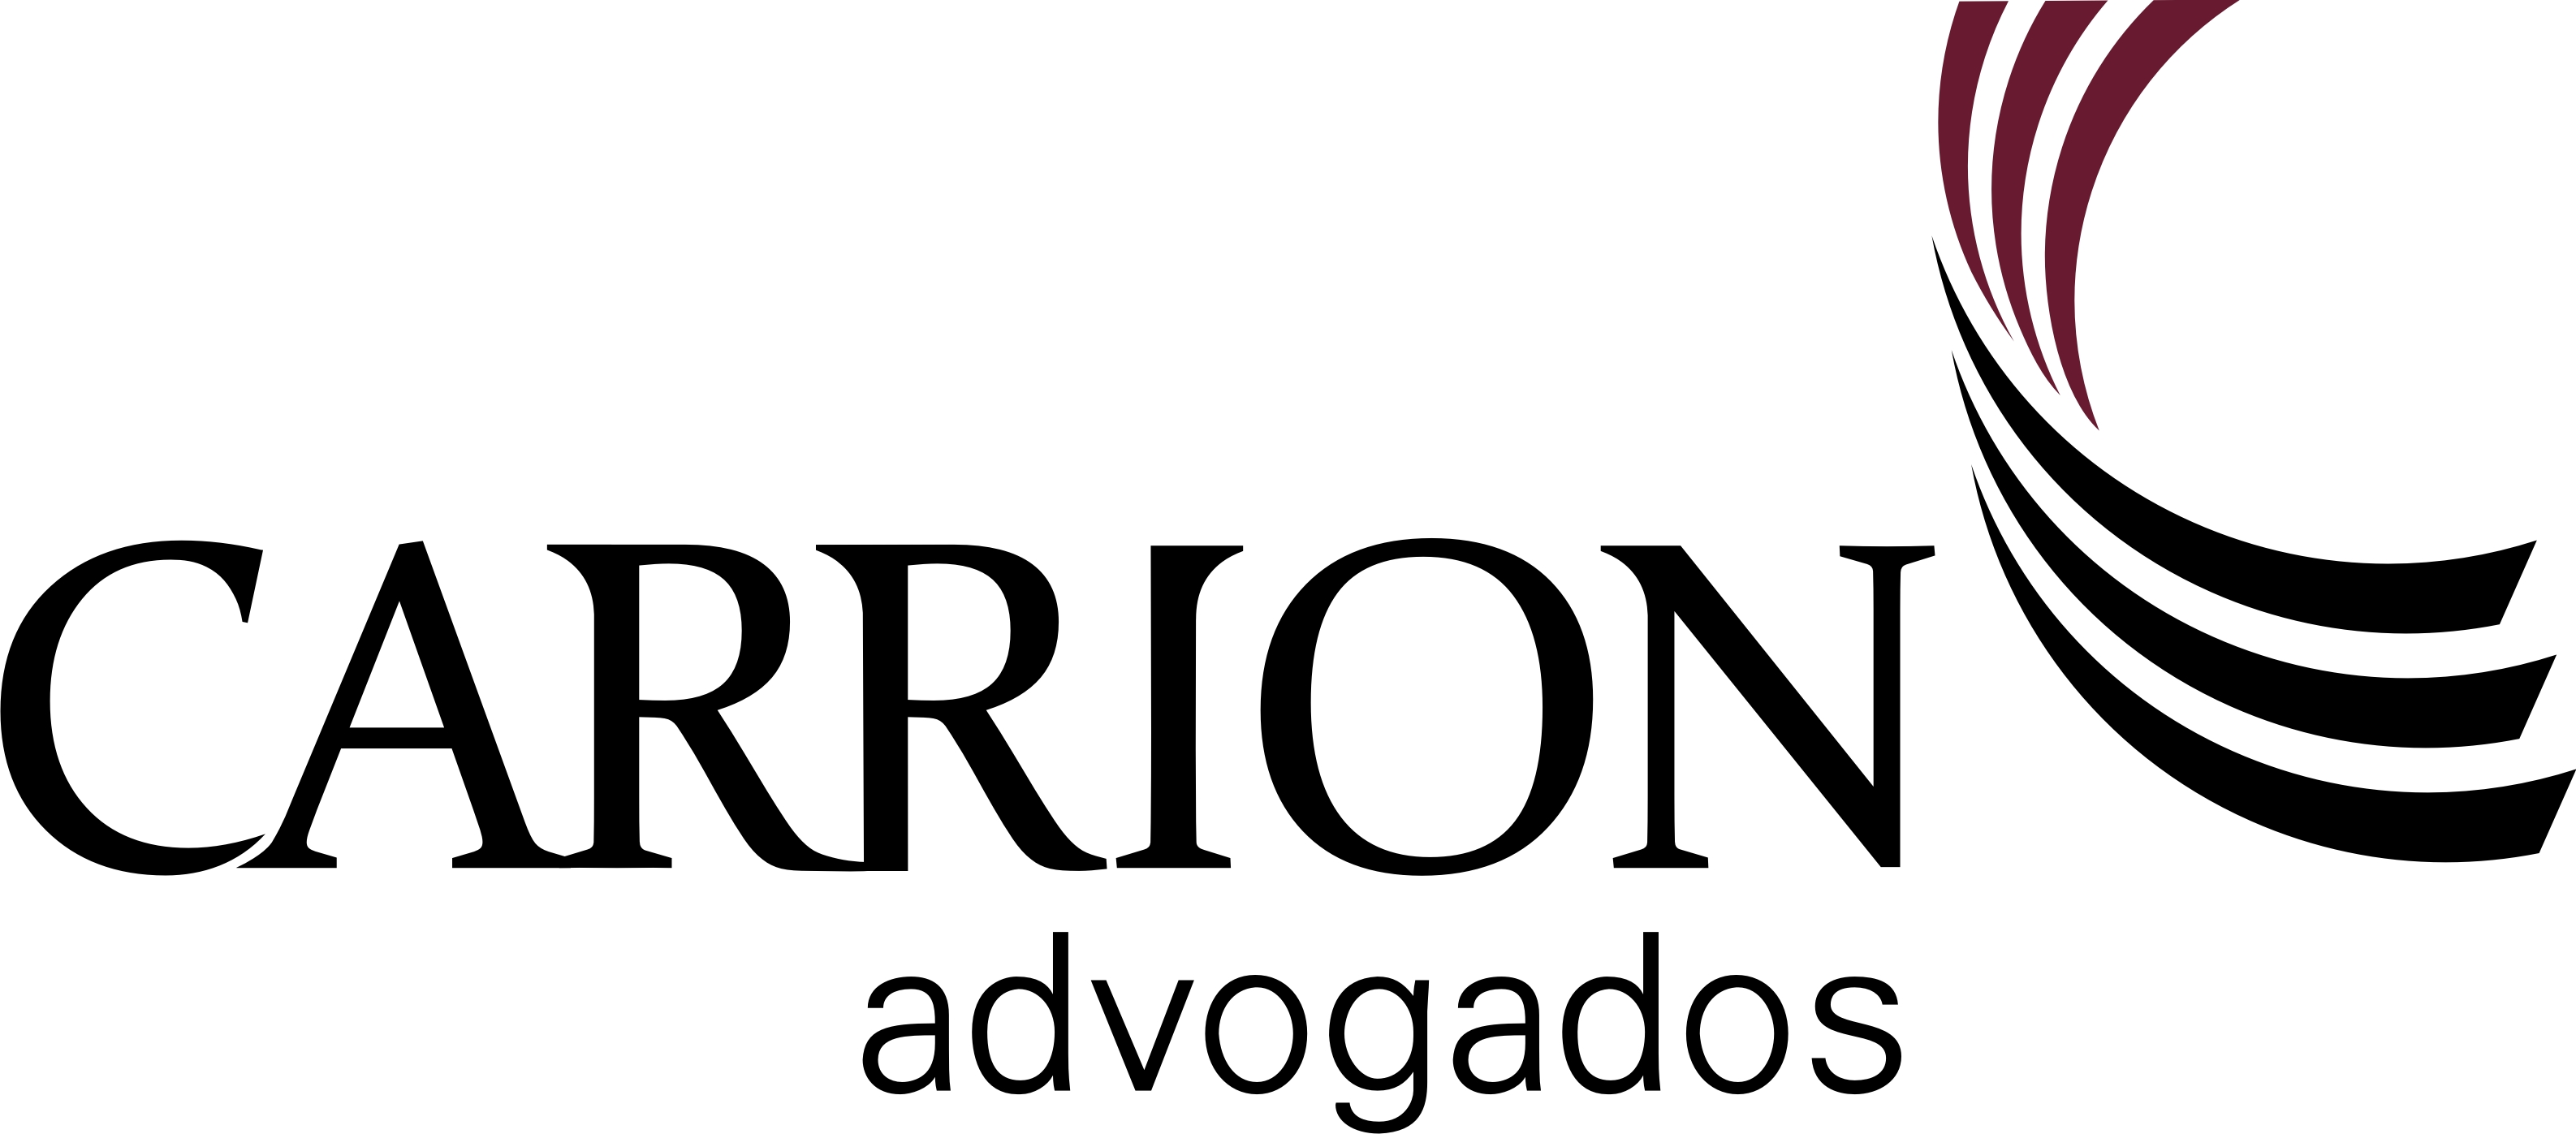 CARRION ADVOGADOS